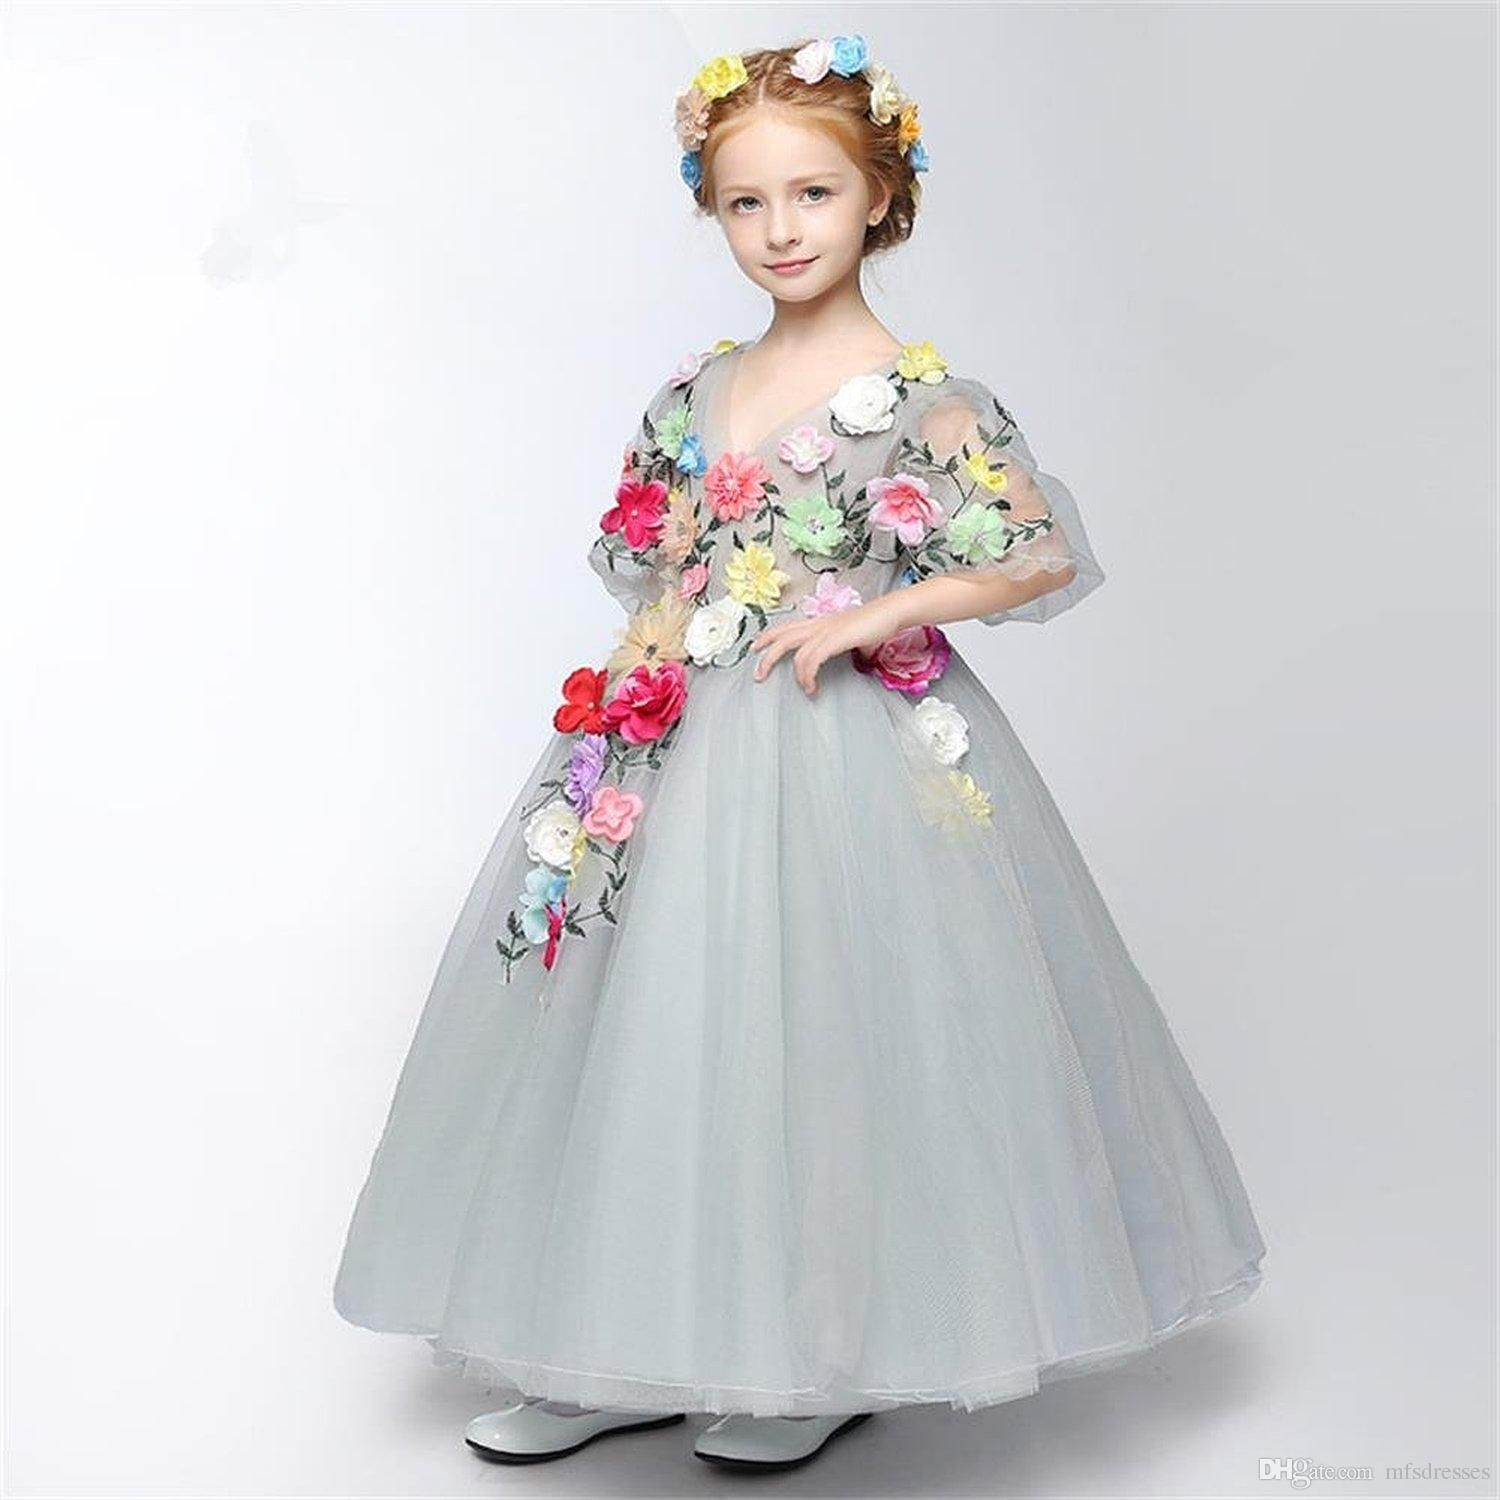 38deb84a3f Cute Beautiful Grey Cinderella Princess Dresses Tiers Tulle Flower Girls  Dresses 2017 Fairy Toddler Full Length